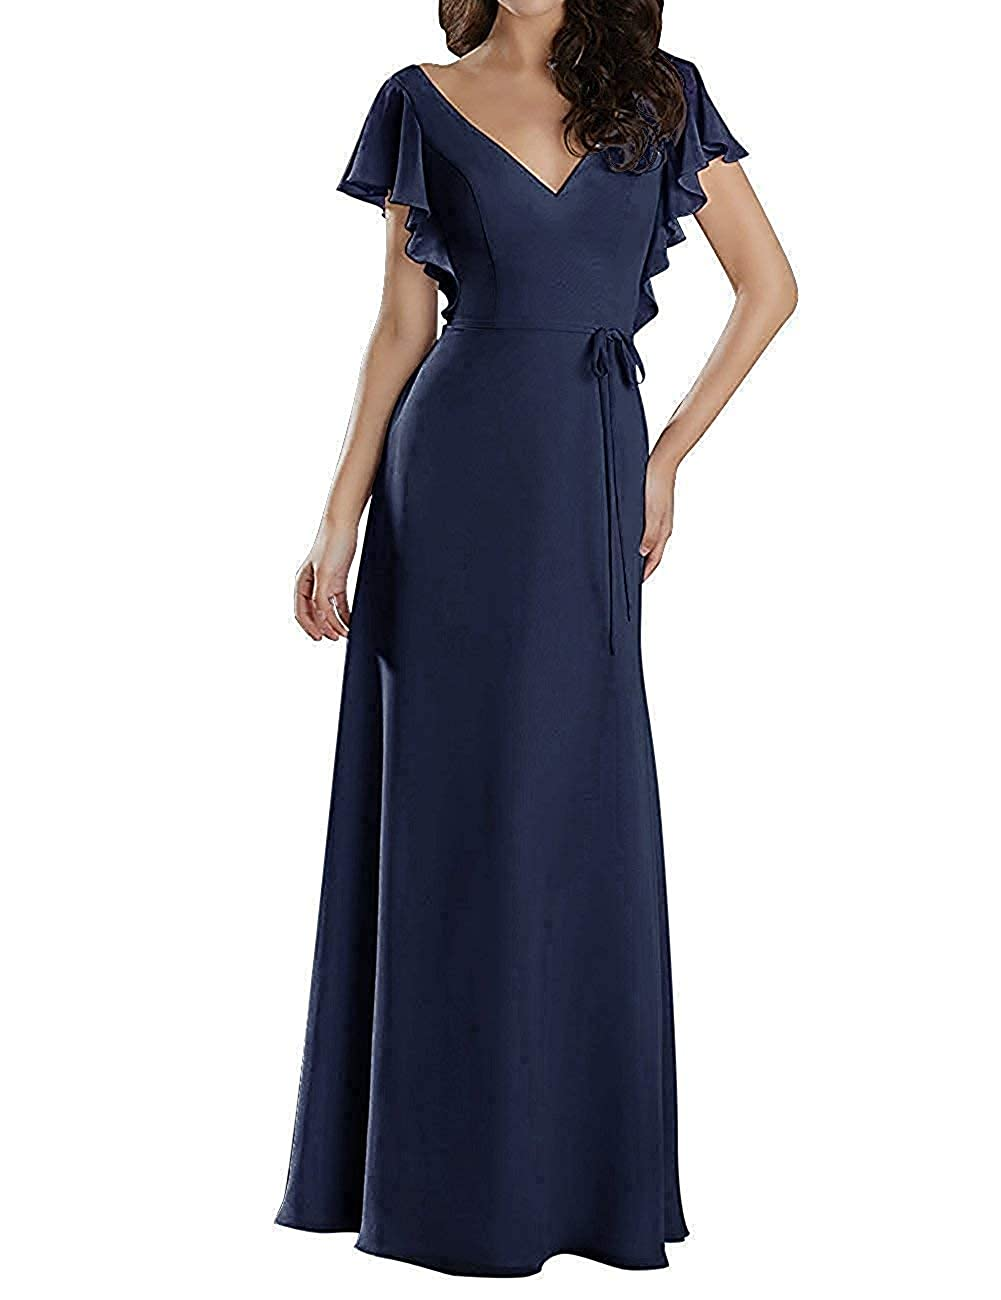 Navy bluee Mother of The Bride Dresses Plus Size Long Evening Gown with Short Sleeves Mother Dress for Wedding